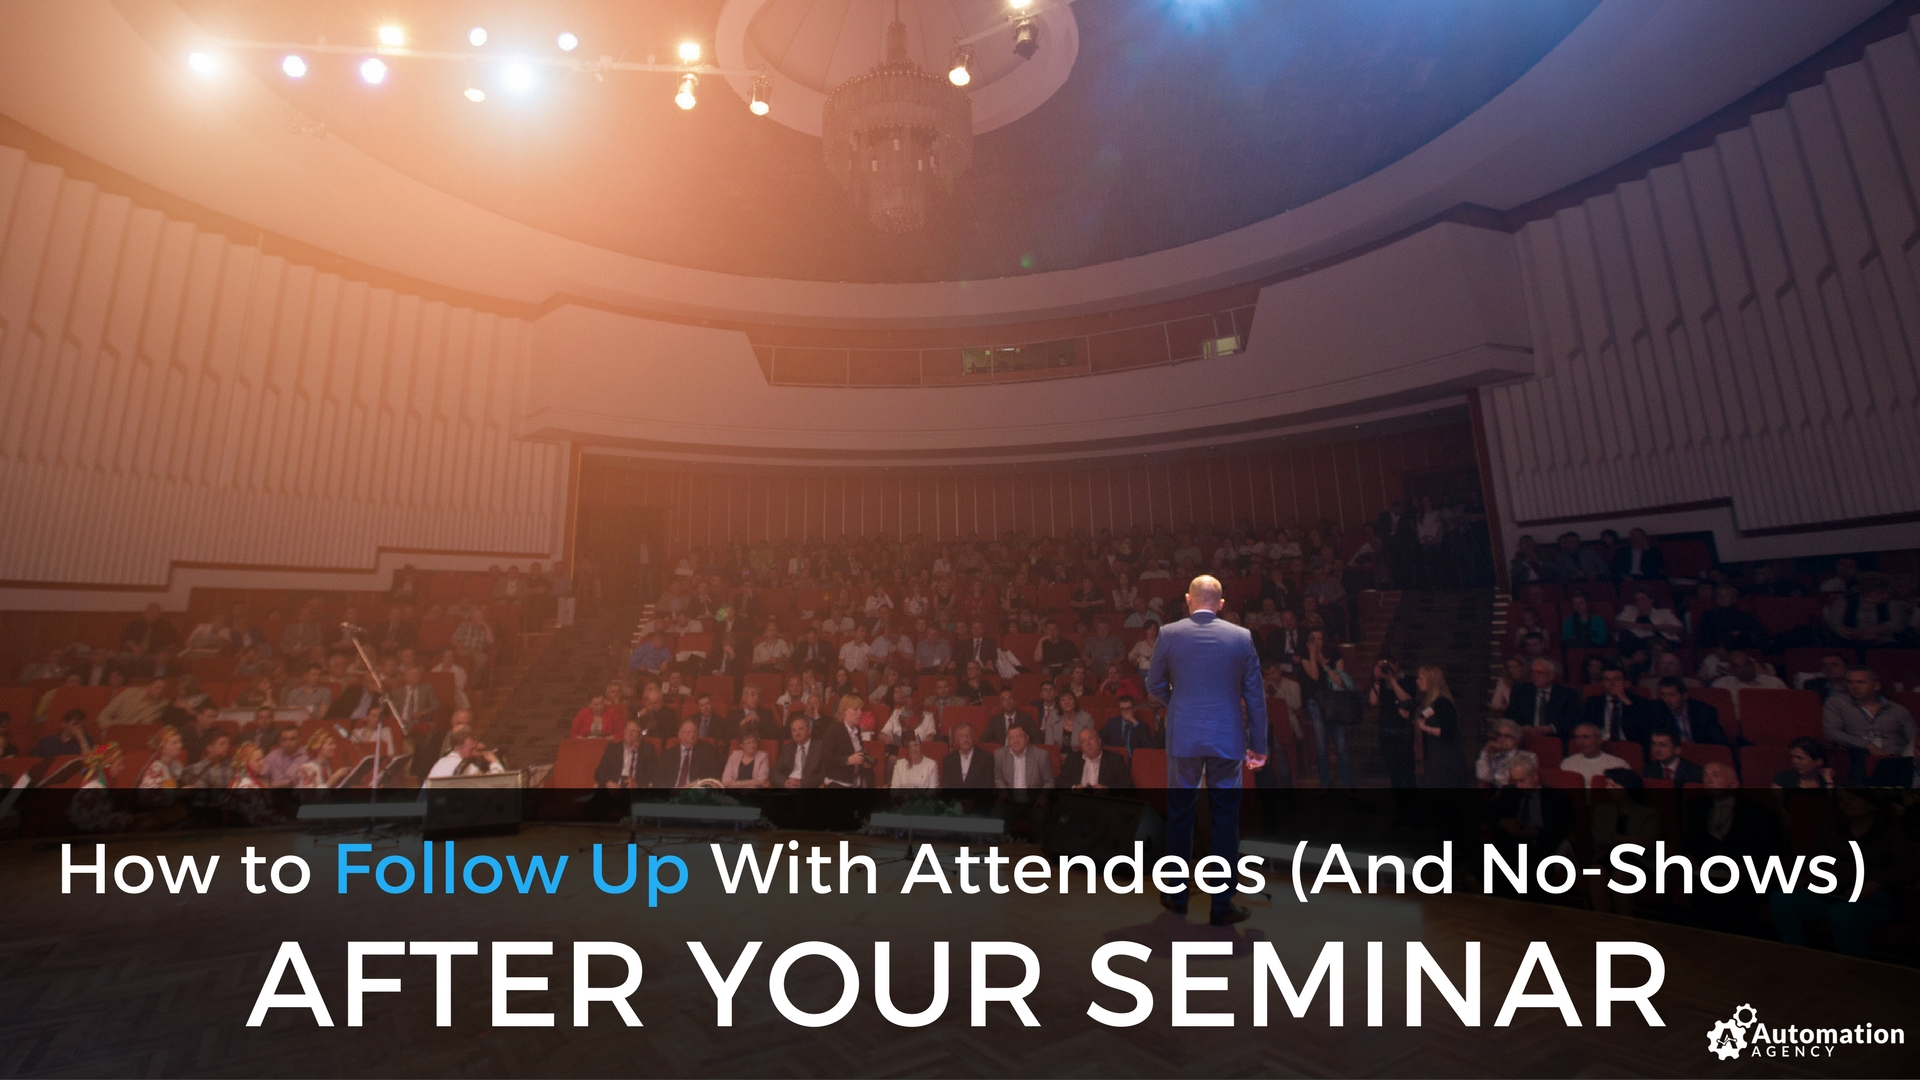 How to Follow Up With Attendees (And No-Shows) After Your Seminar